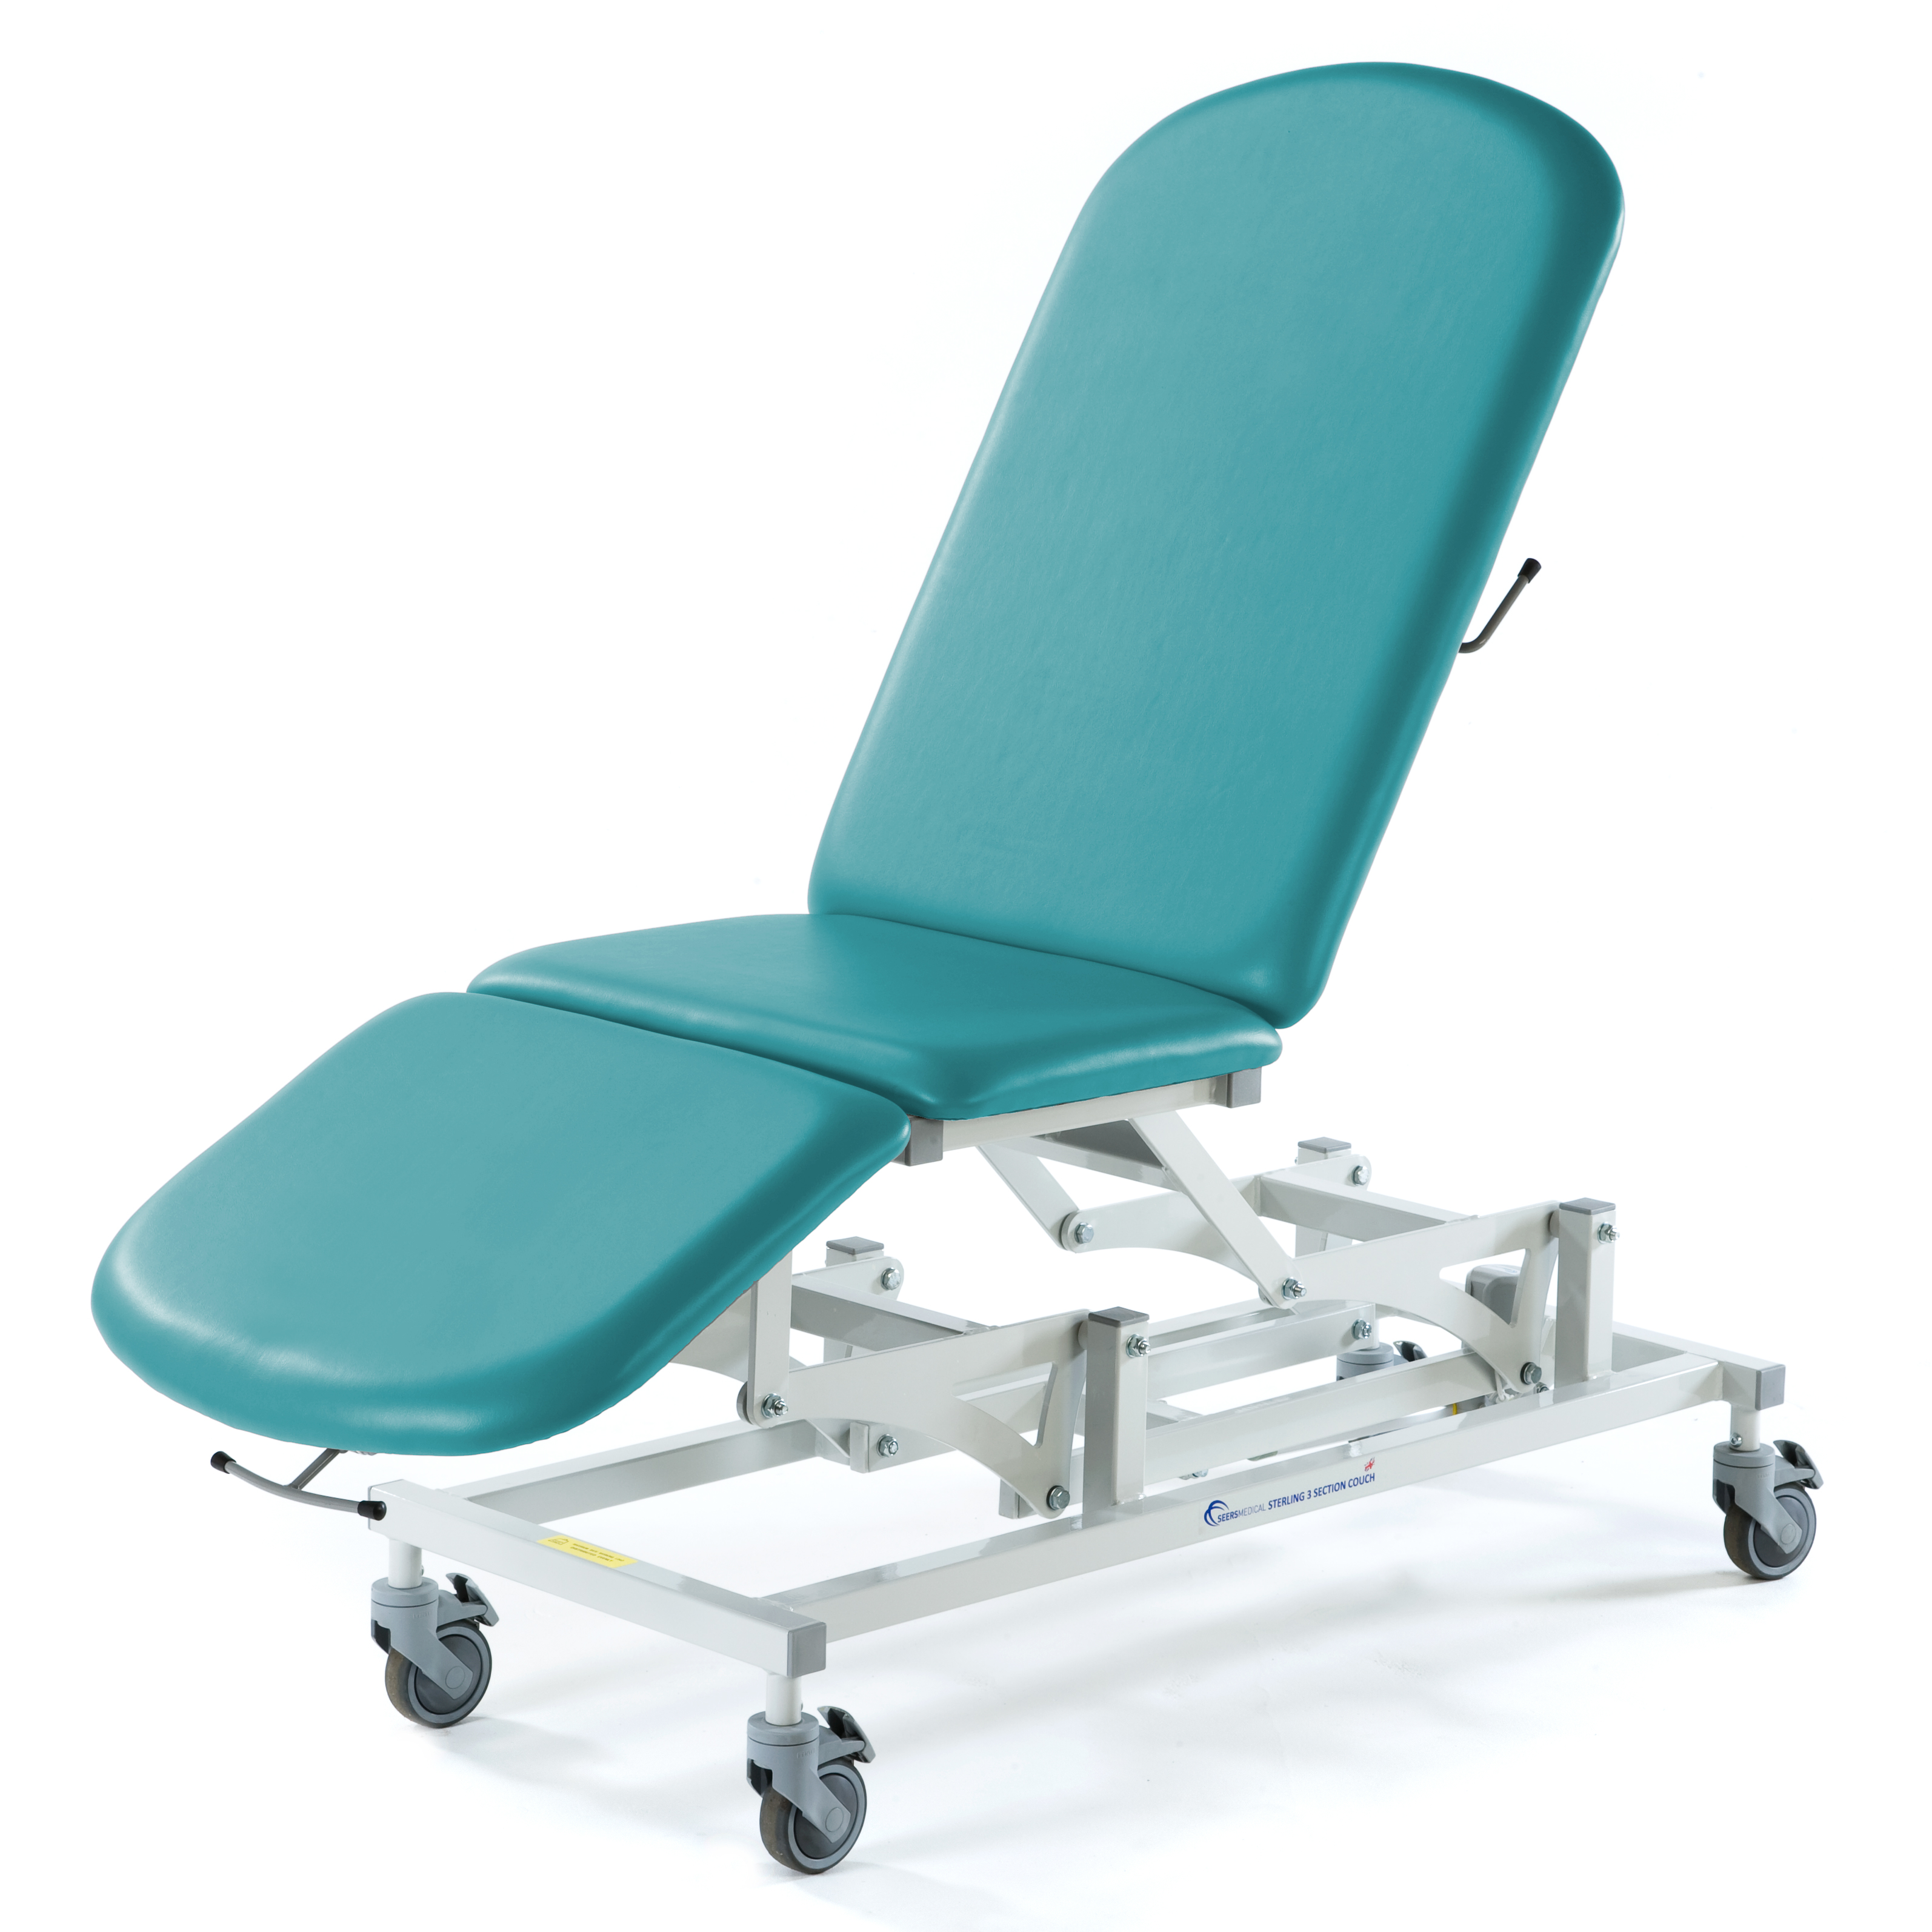 Enjoyable Sterling 3 Section Couch Seers Medical The Uks Leading Theyellowbook Wood Chair Design Ideas Theyellowbookinfo